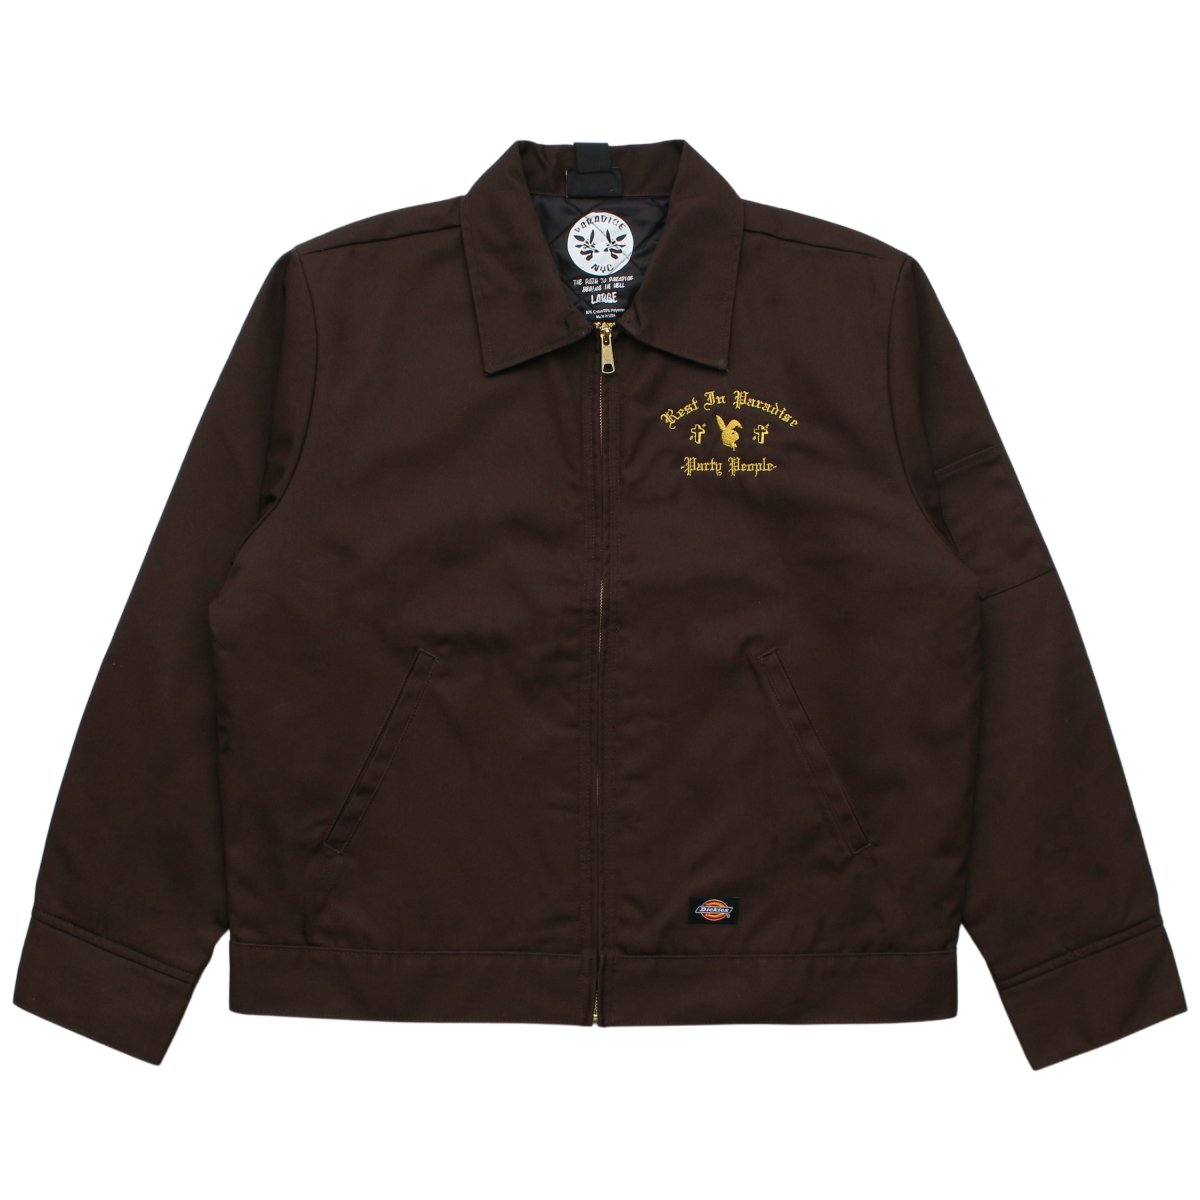 PARTY PEOPLE DICKIES (GOLD EMBROIDERY) 【BROWN】